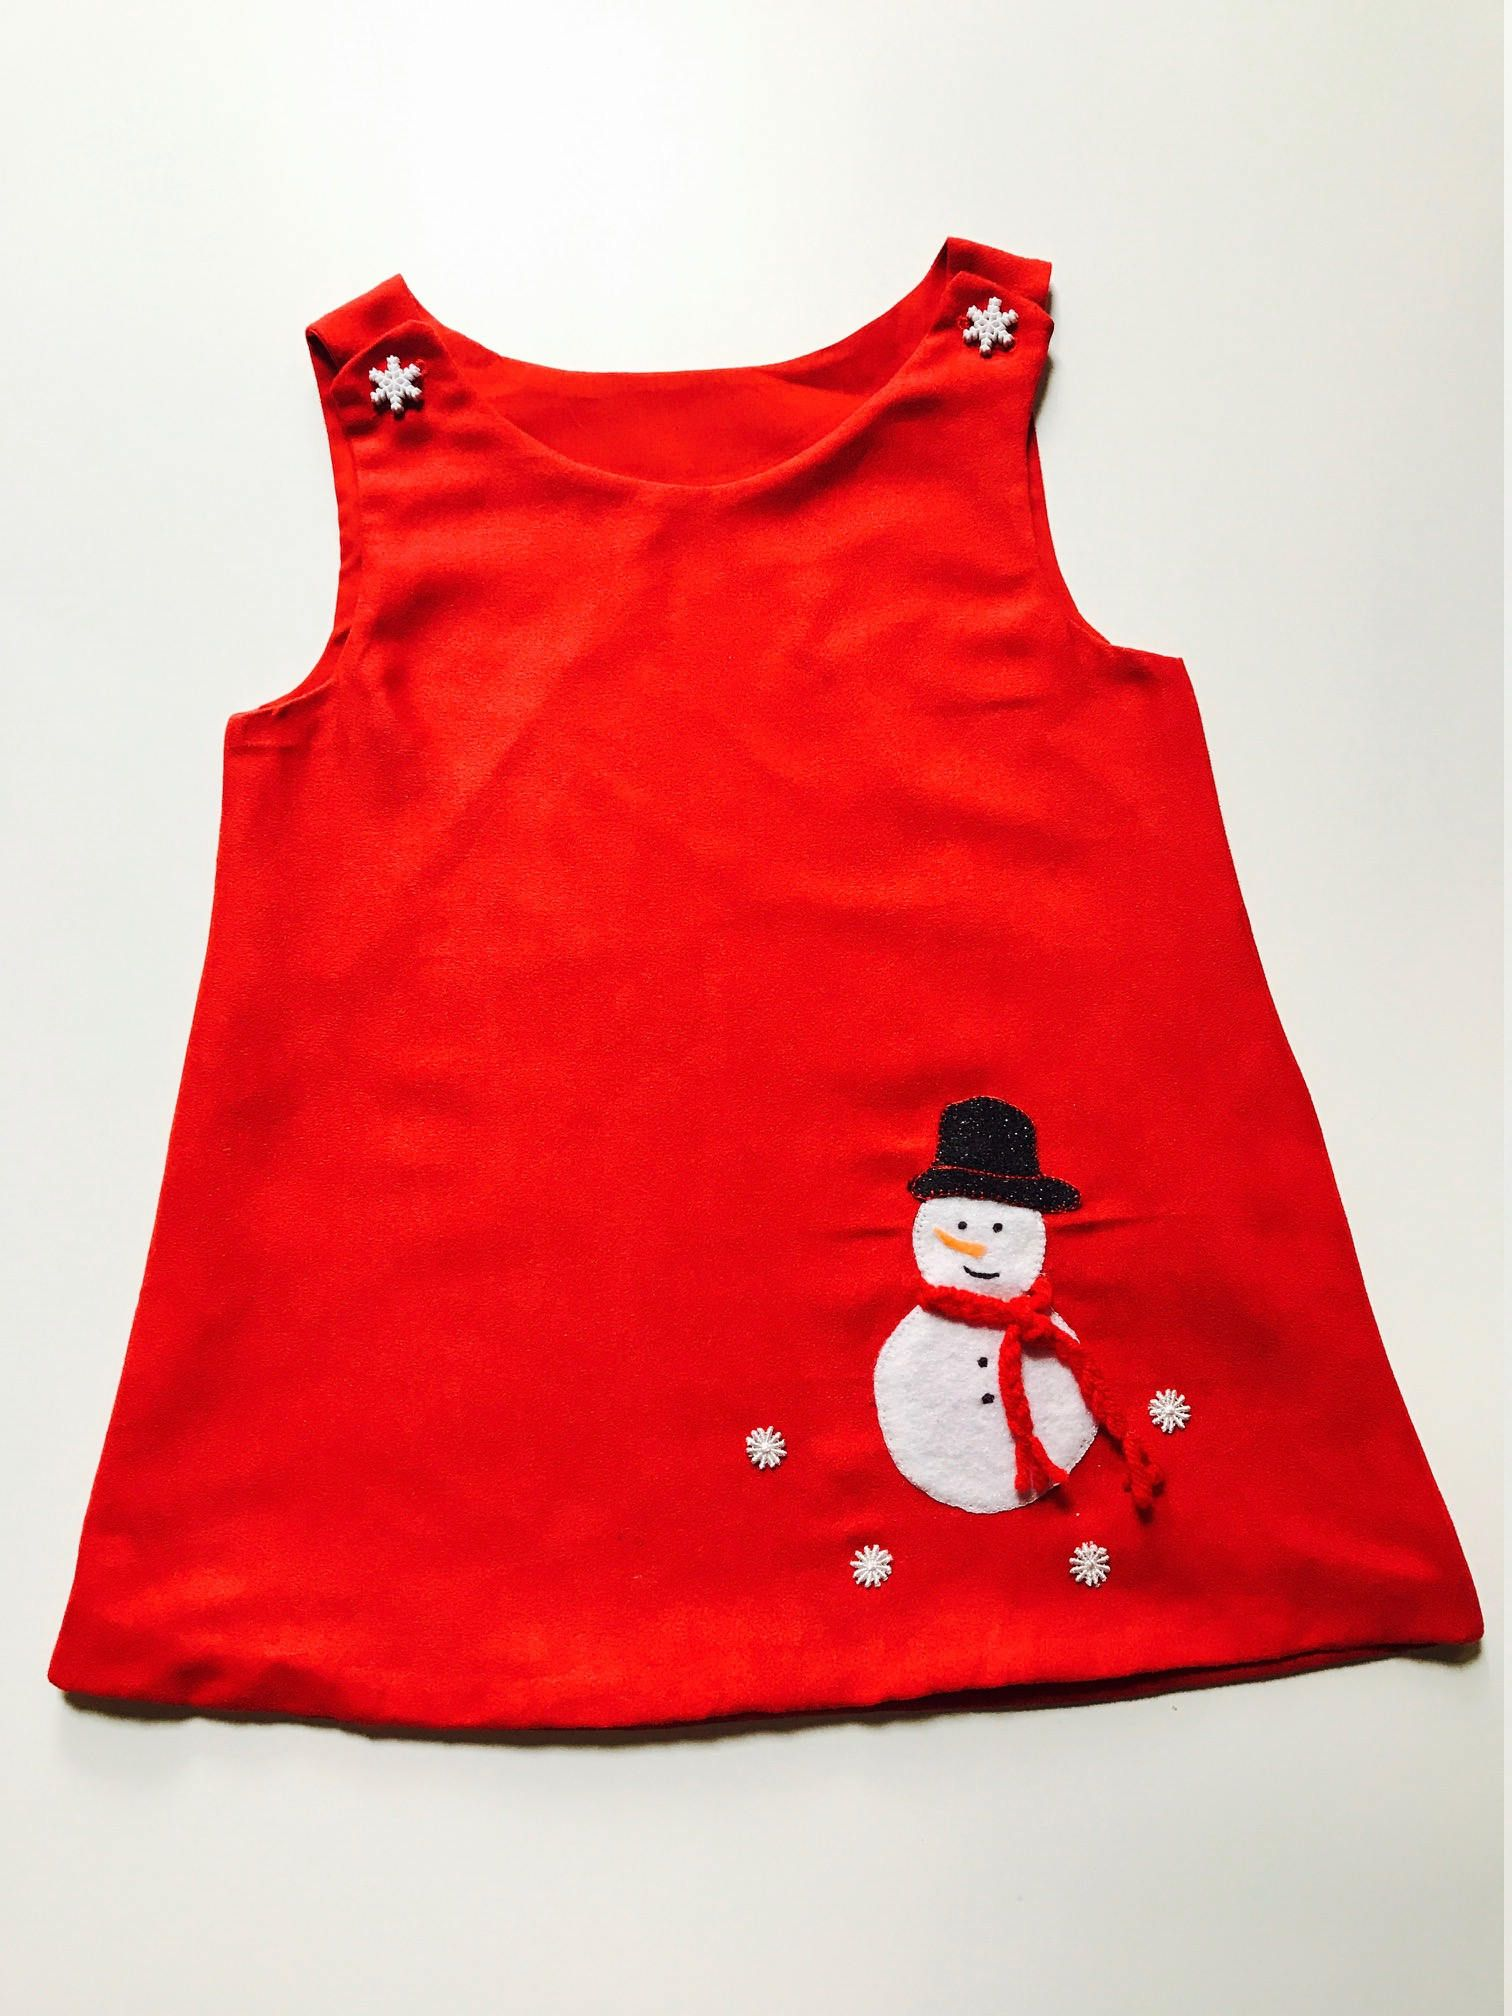 Infant Toddler girls Red Christmas dress Jumper Size NB 5T by